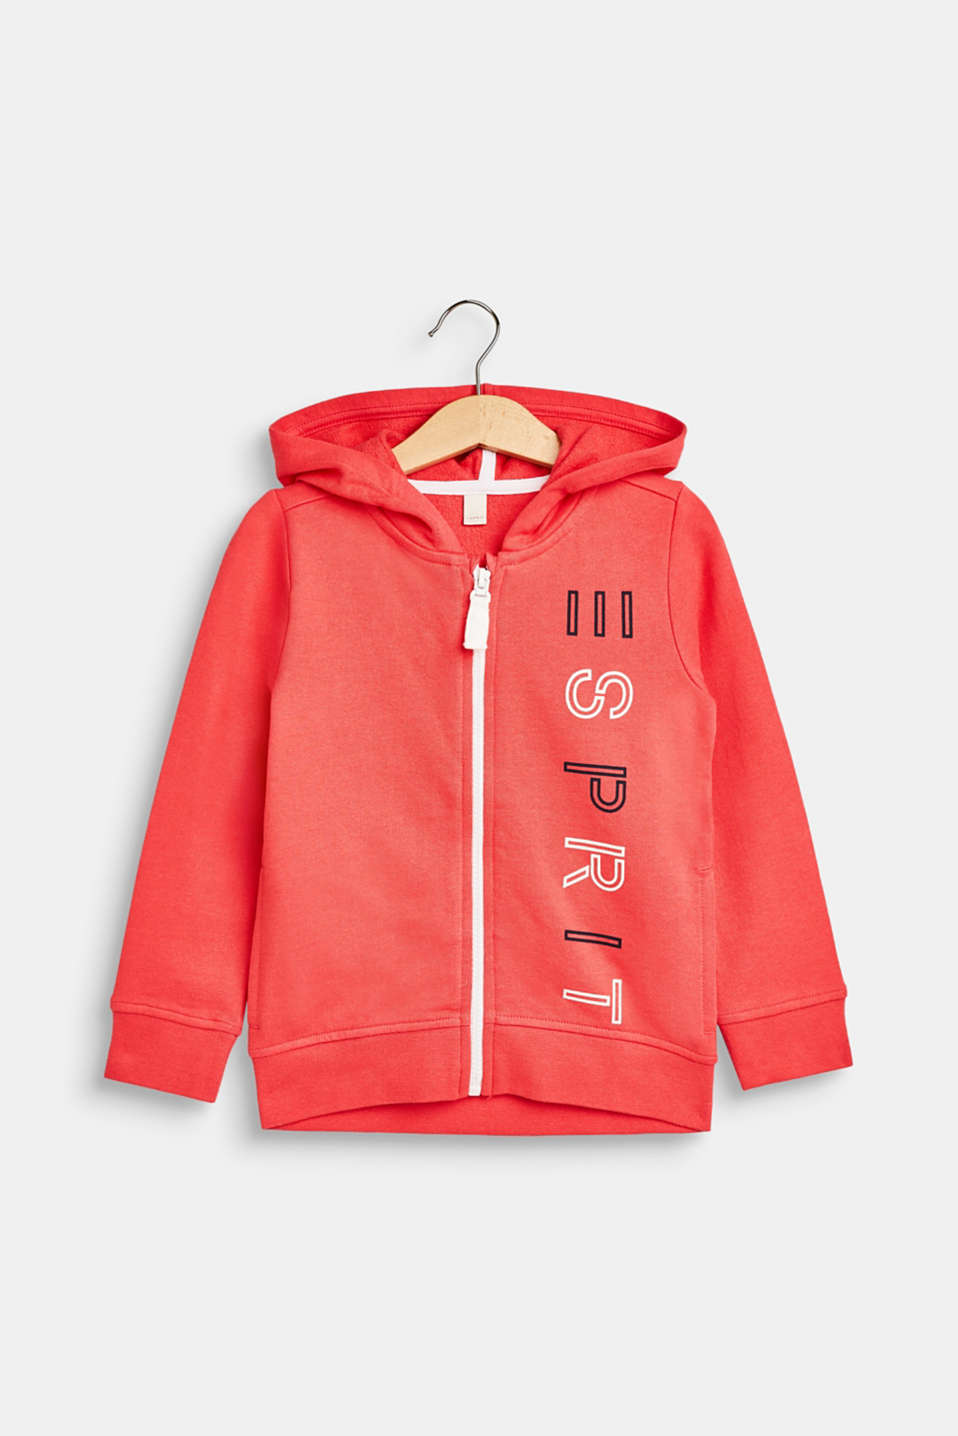 Esprit - Sweatshirt cardigan with a hood and logo print